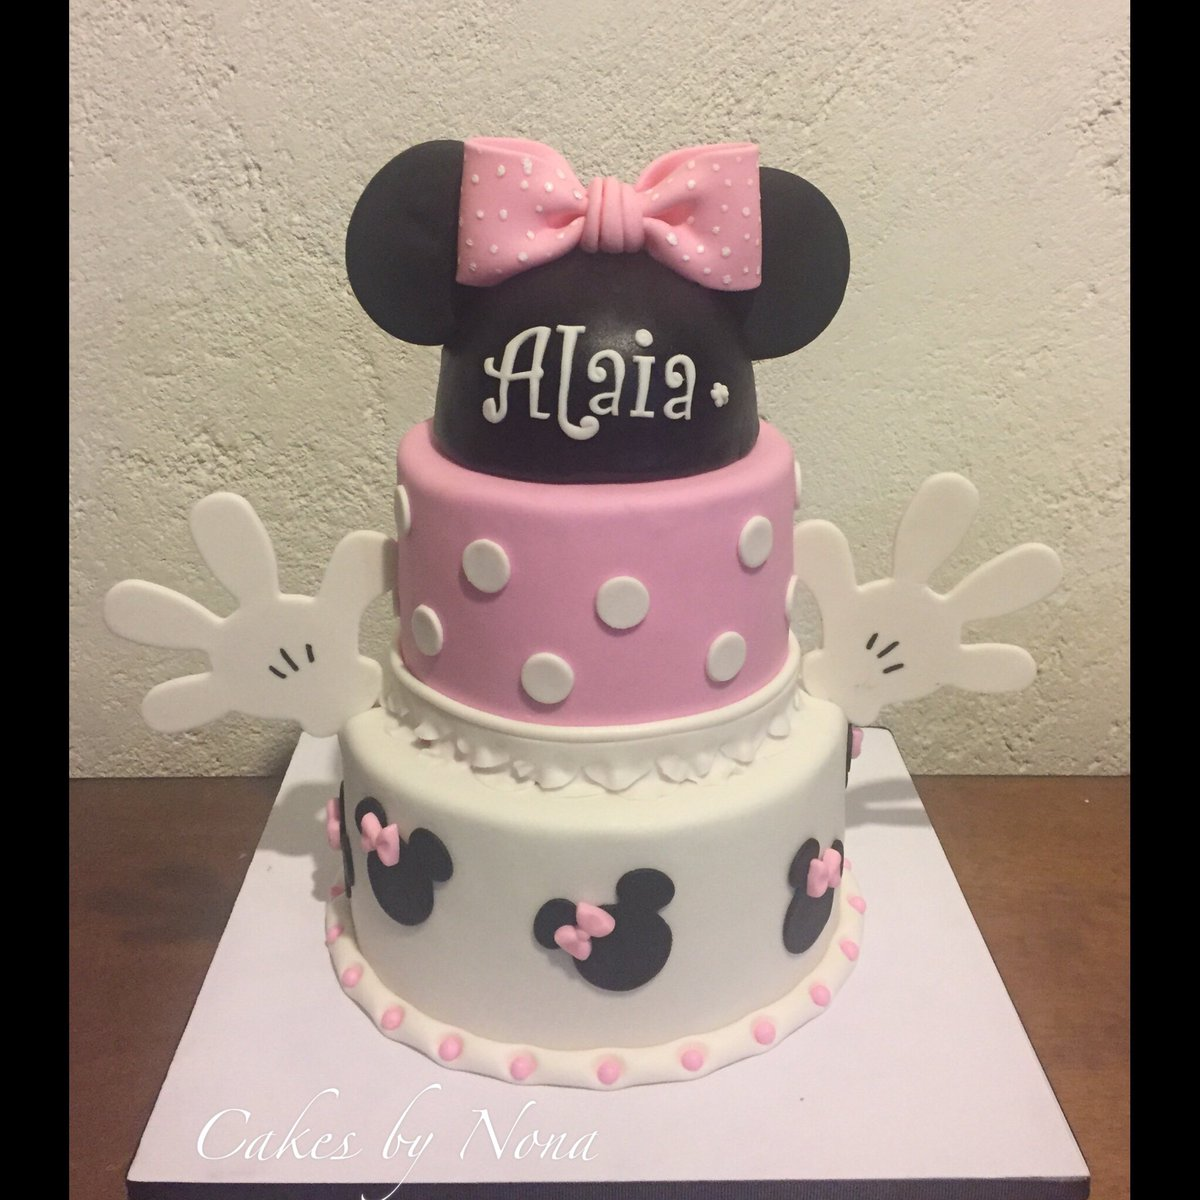 Miraculous Cakesbynona Auf Twitter Minnie Mouse First Bday Cake Primer Funny Birthday Cards Online Alyptdamsfinfo